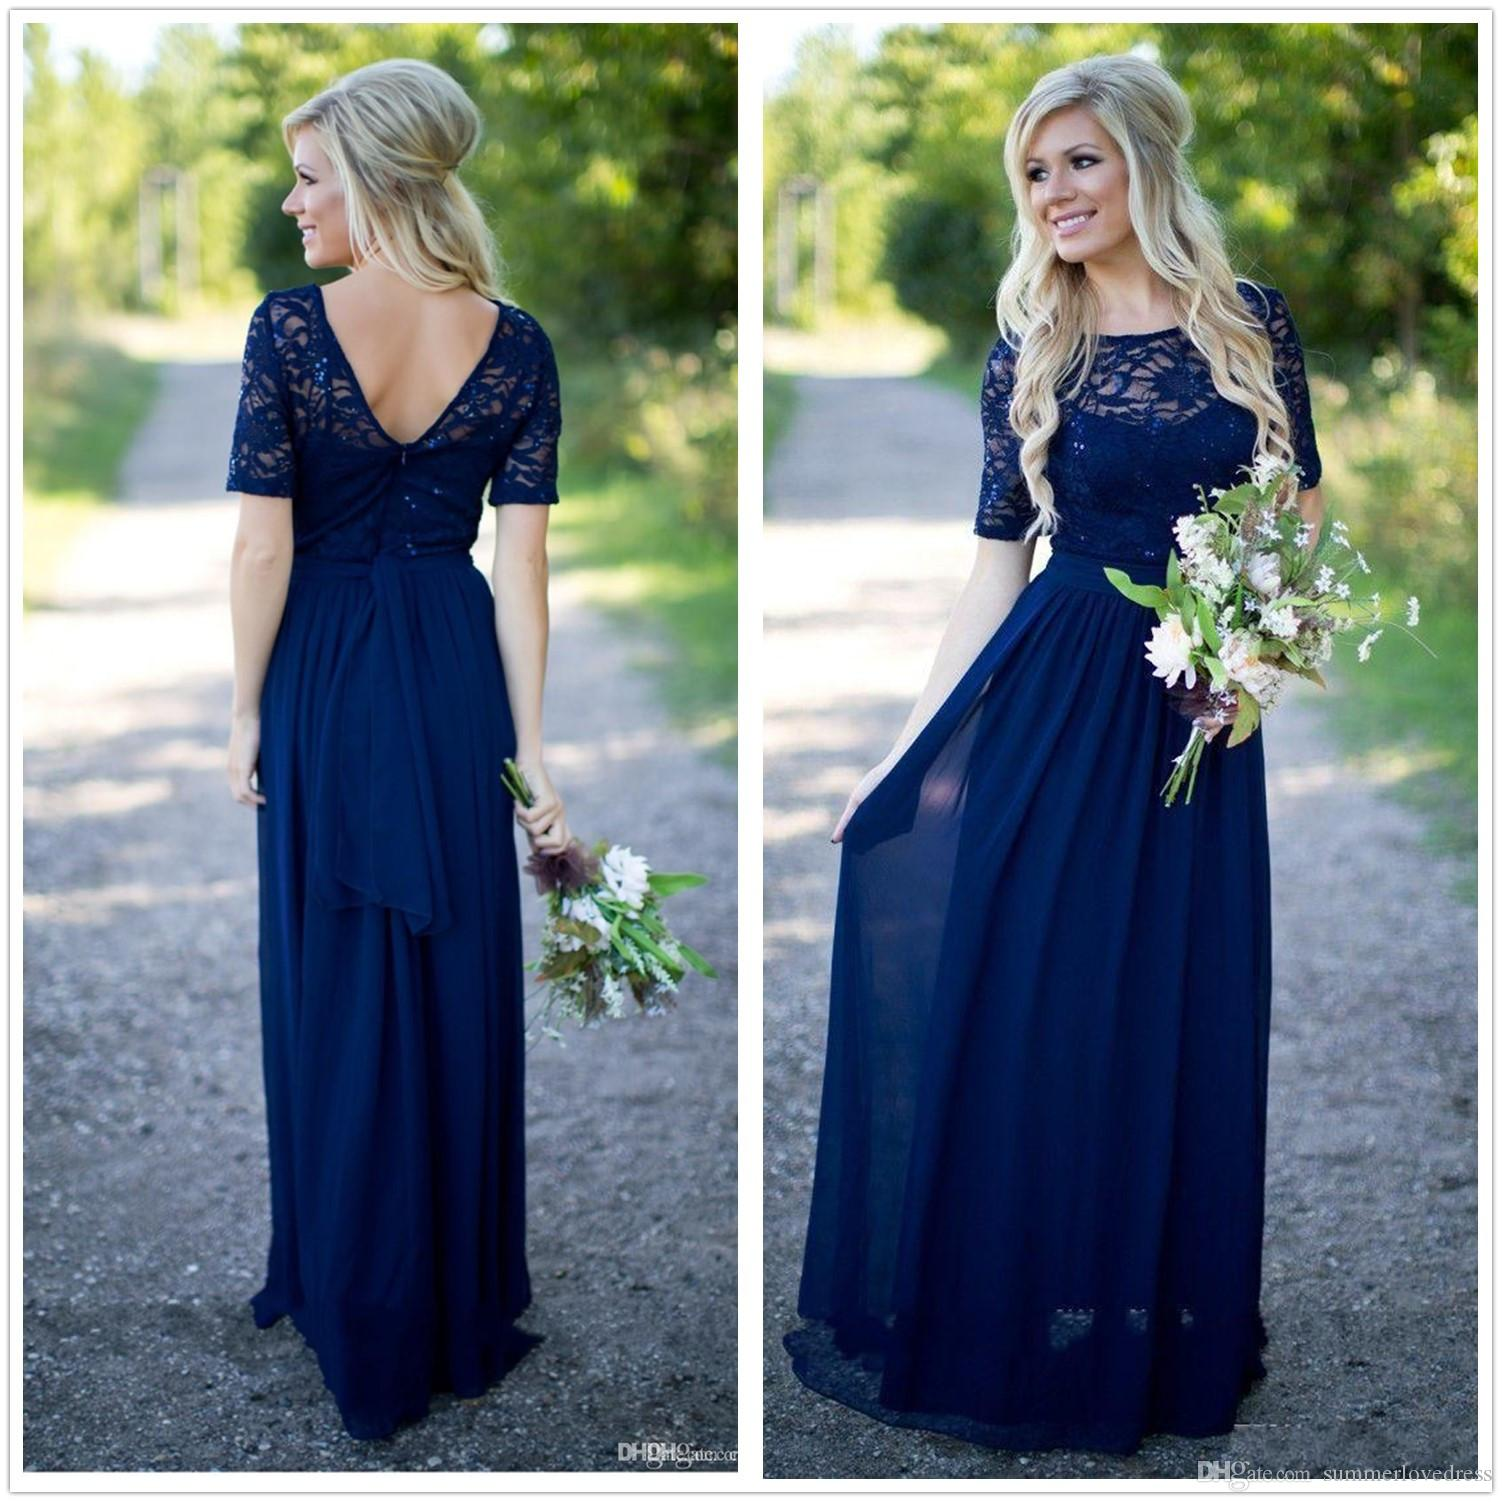 2017 new navy blue 12 long sleeves chiffon country bridesmaid 2017 new navy blue 12 long sleeves chiffon country bridesmaid dresses lace top ruffle floor length wedding party prom dresses navy blue bridesmaid dress ombrellifo Choice Image